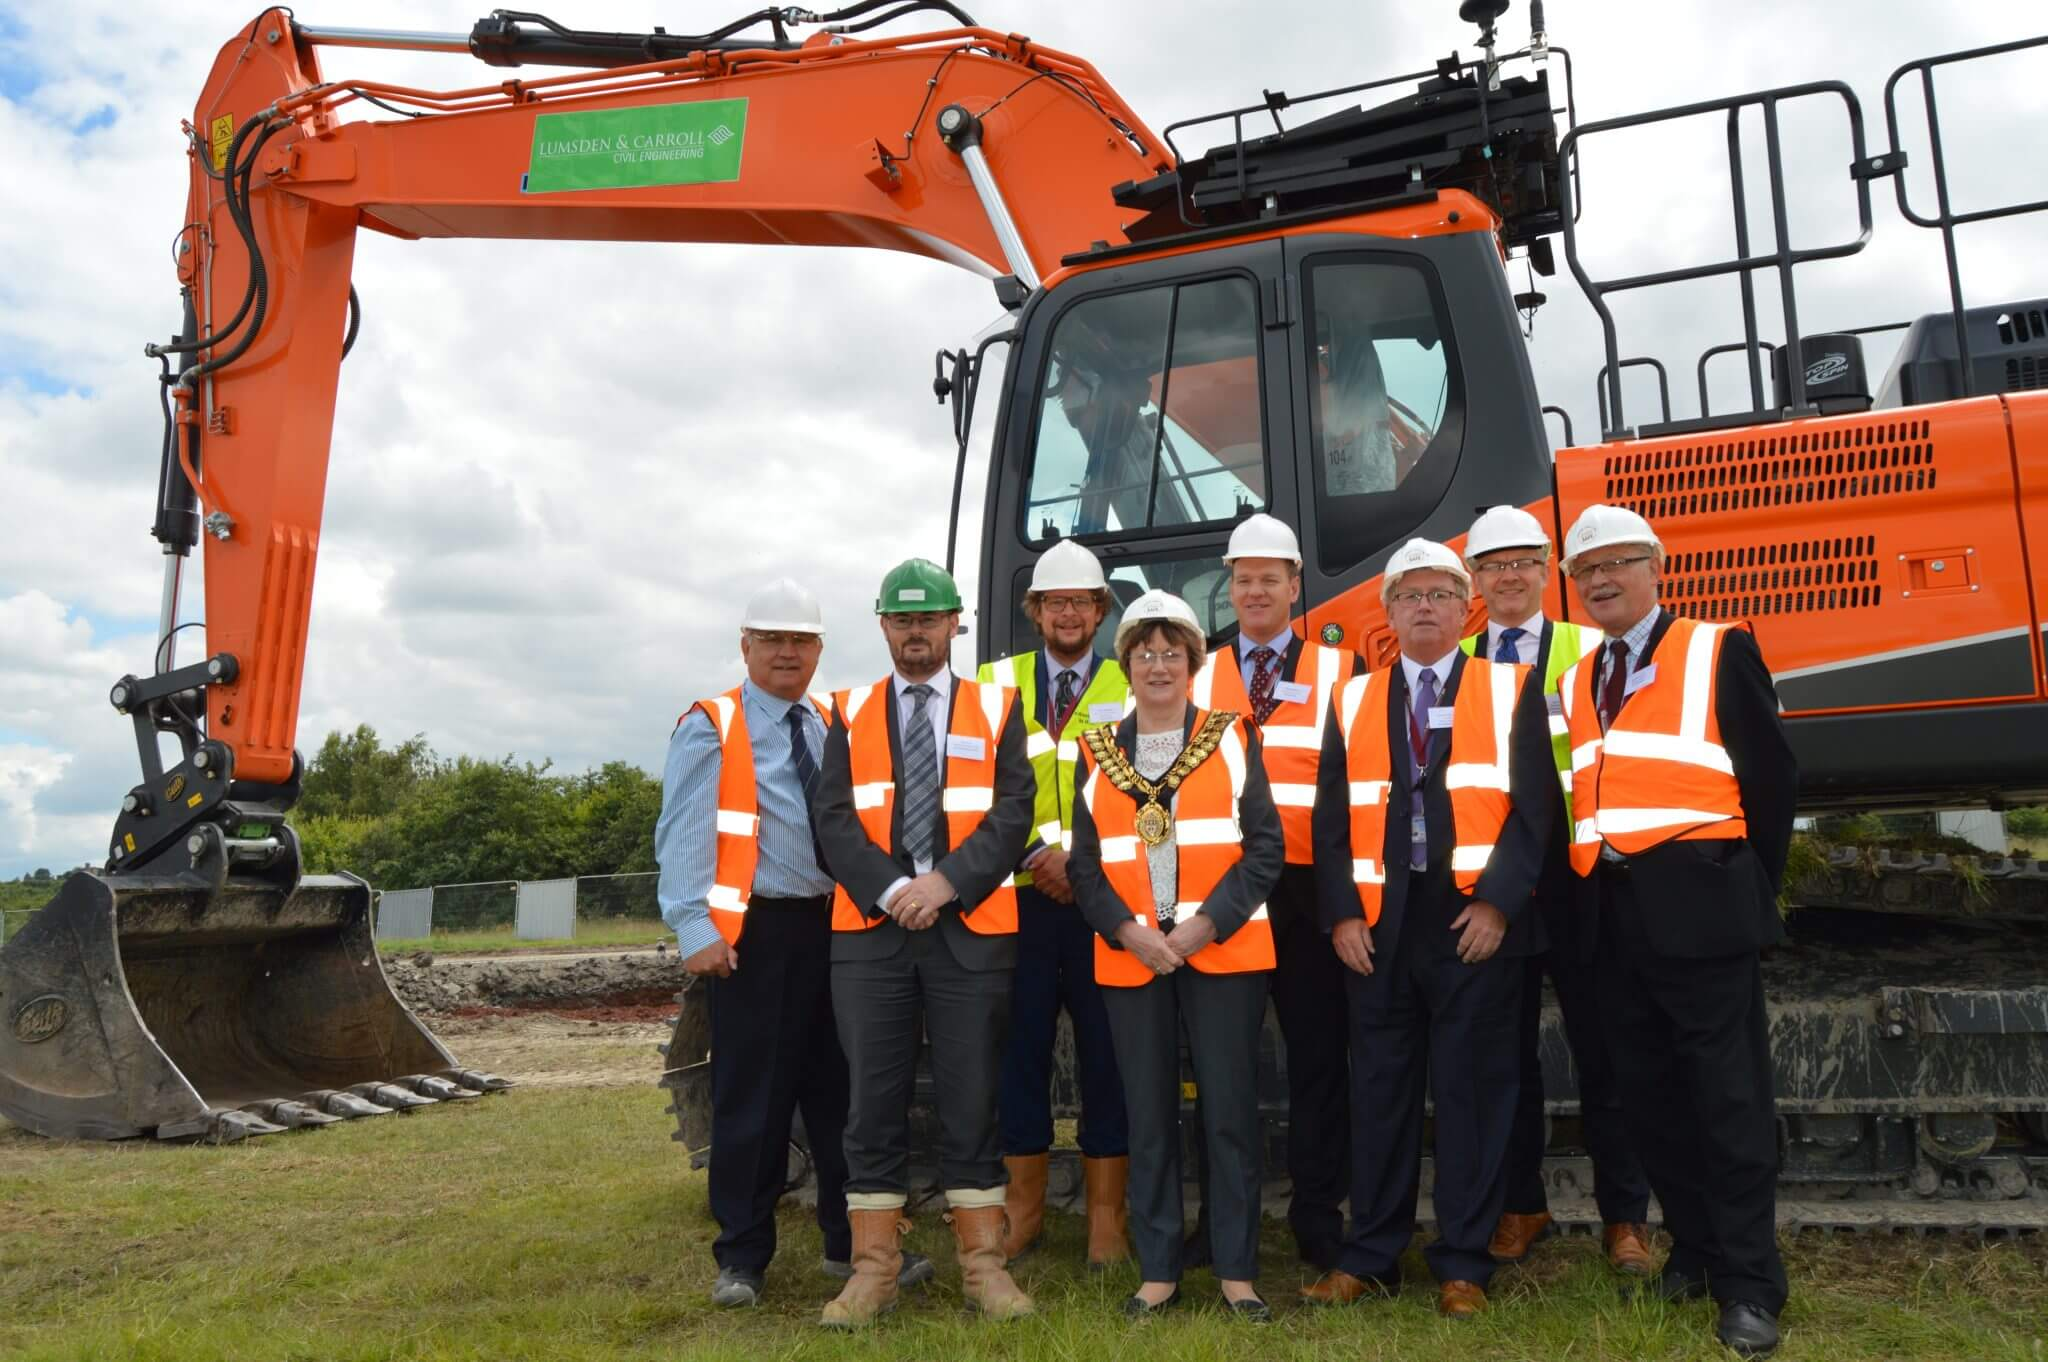 Ground-breaking ceremony welcomes the start of major road improvements and future opportunities